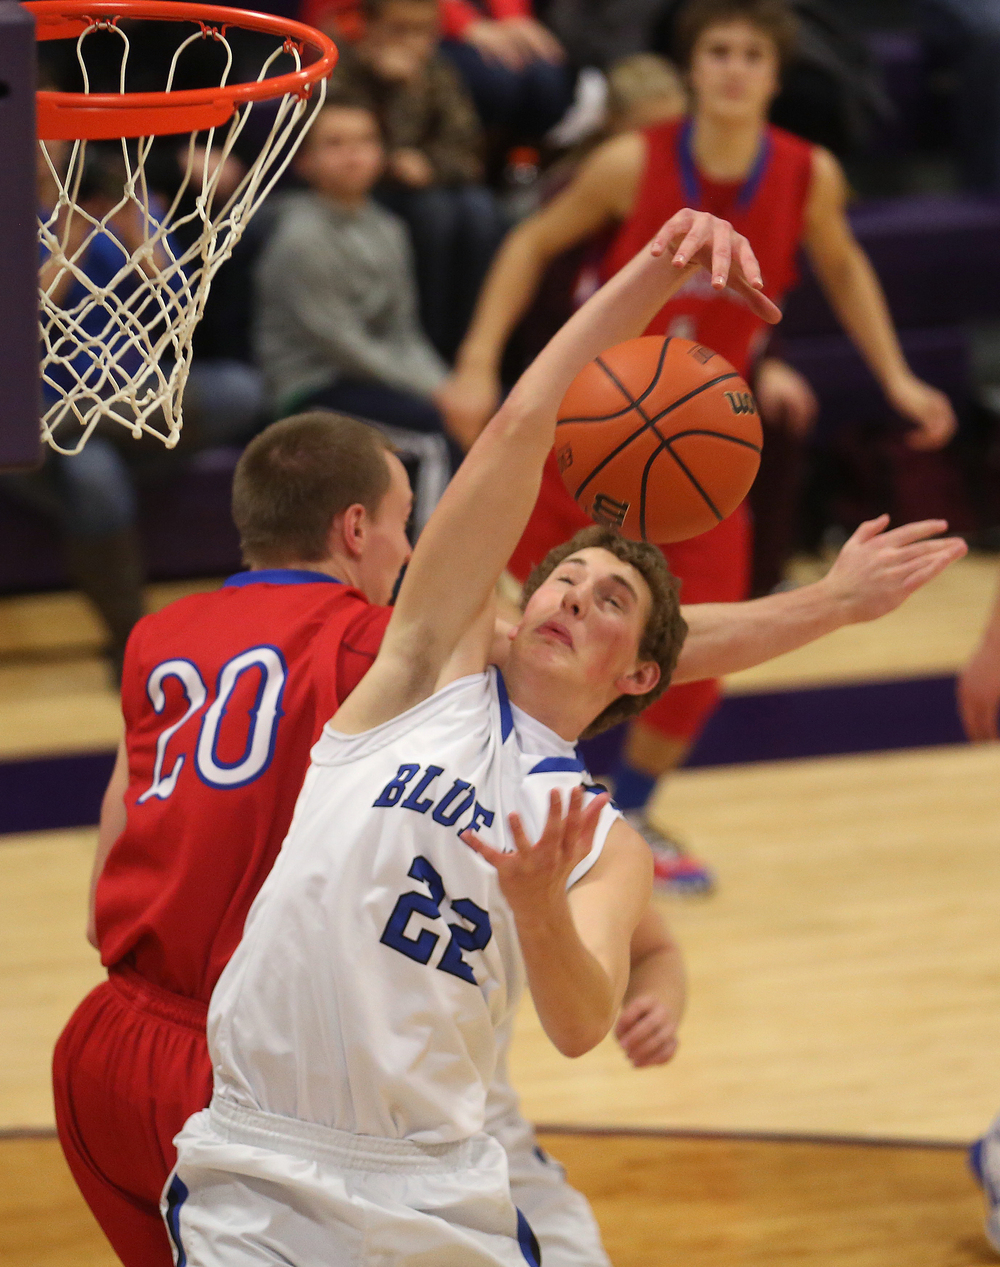 Fighting for a rebound during first half action are Bluejay player Max Muller and Cardinals player Dylan Bee. Petersburg PORTA defeated Pleasant Plains 58-50 on the second day of action at the Williamsville Holiday basketball tournament at Williamsville High School on Saturday, Dec. 27, 2014. David Spencer/The State Journal-Register